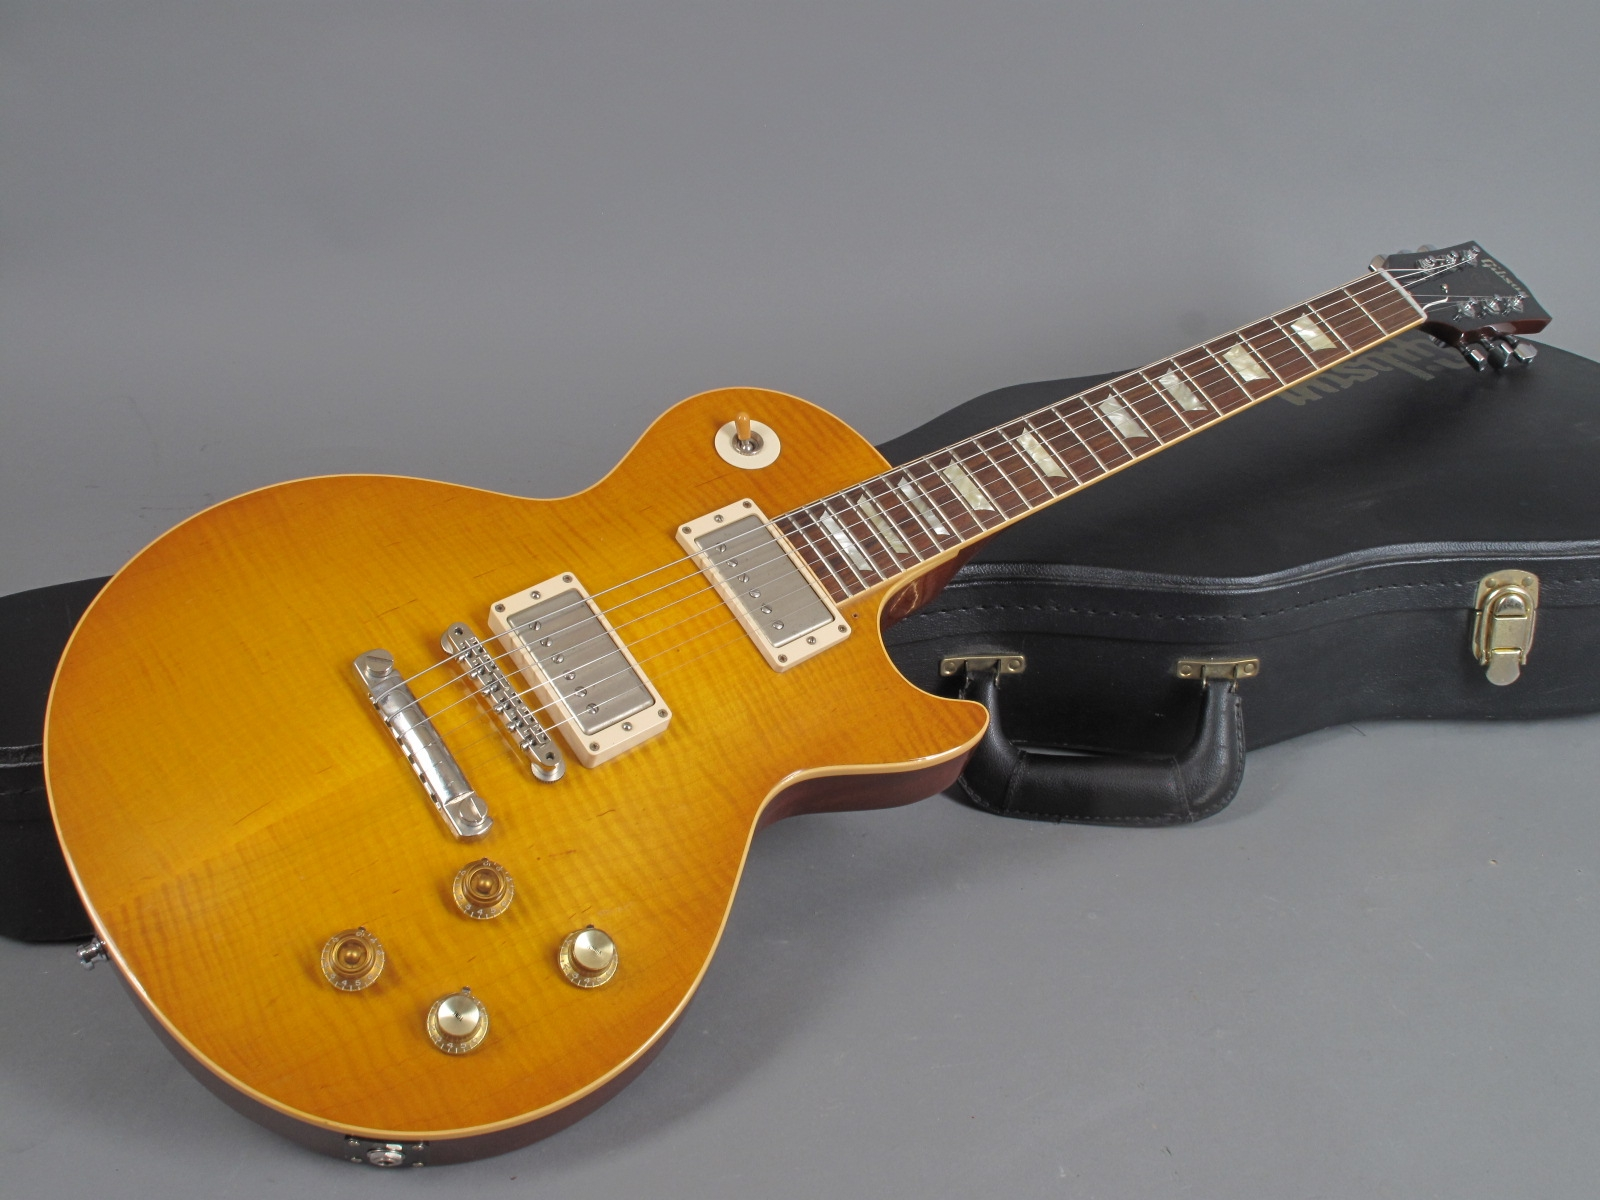 https://guitarpoint.de/app/uploads/products/2010-gibson-les-paul-collectors-choice-1-melvin-franks-greeny/2010-Gibson-Les-Paul-CC1-173_17.jpg